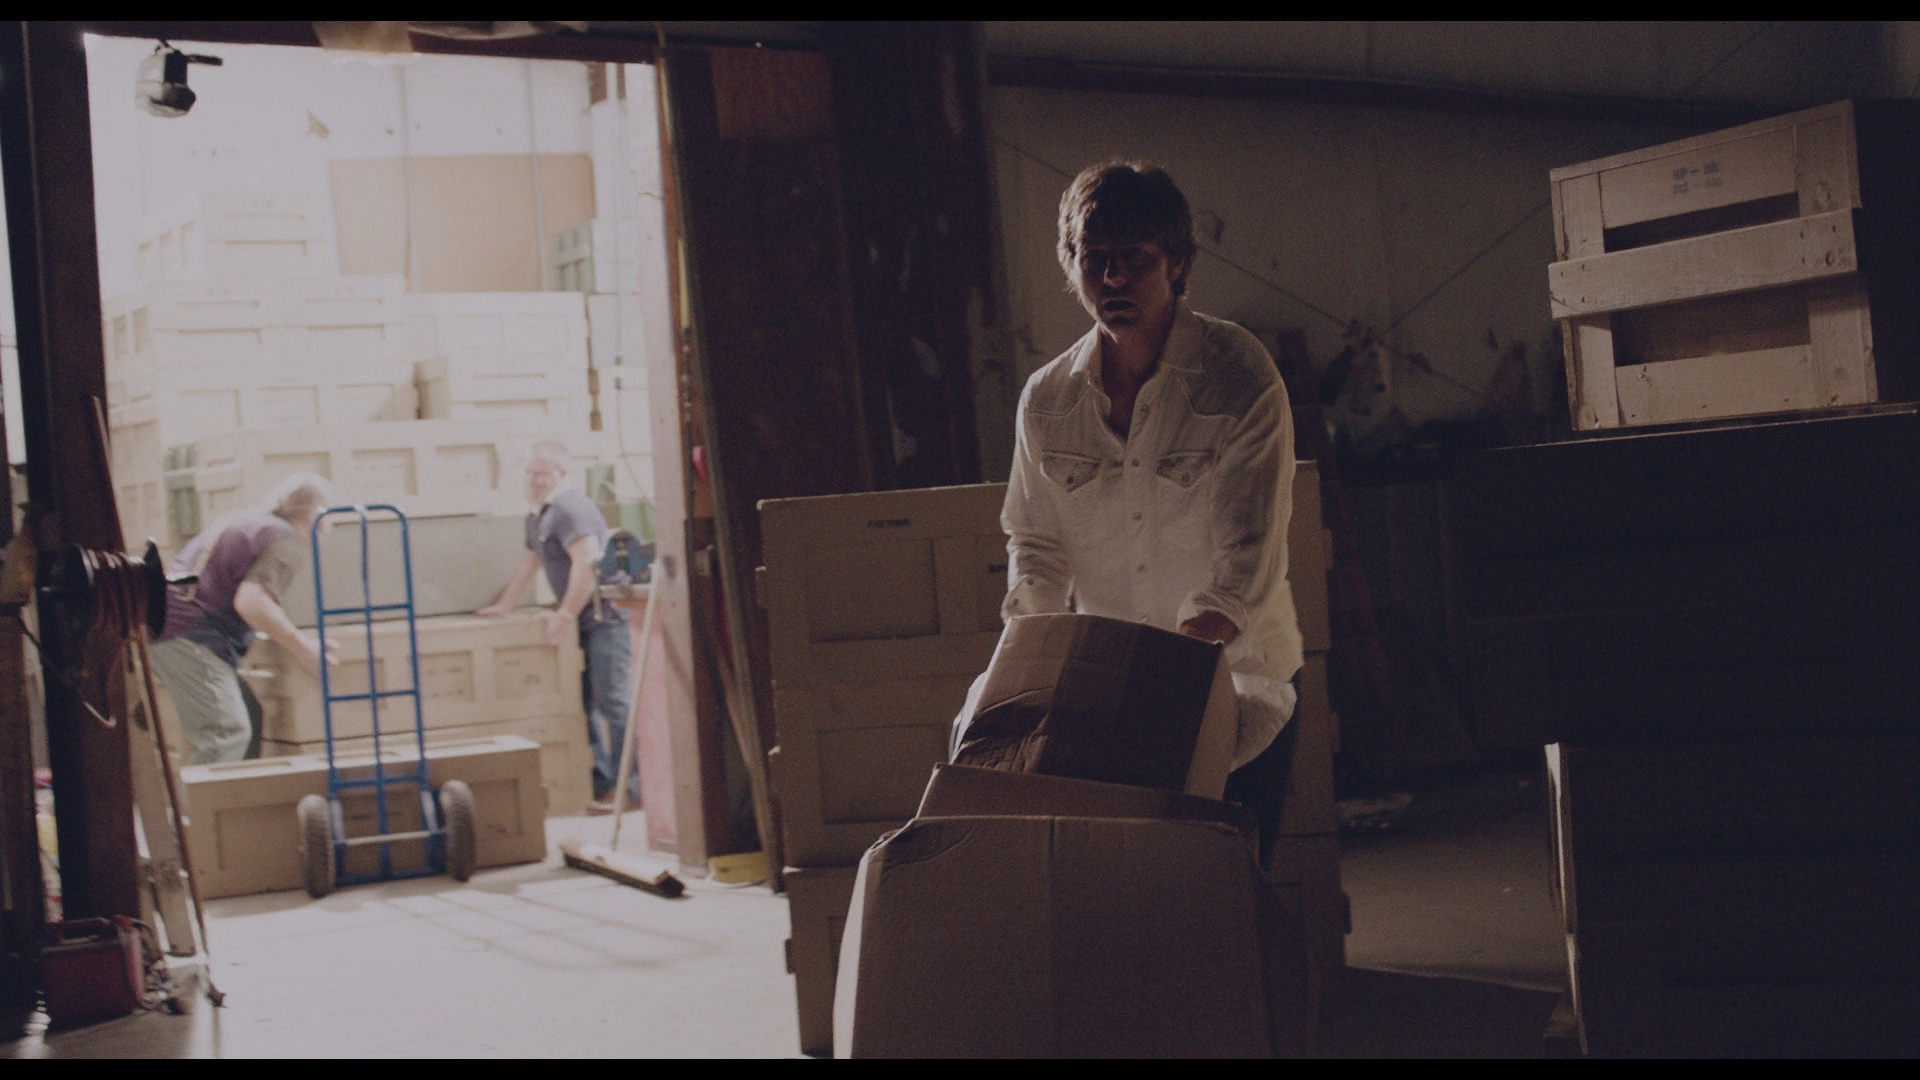 AMERICAN MADE (2017) - Barry Seal's (Tom Cruise) Costume - Image 15 of 23